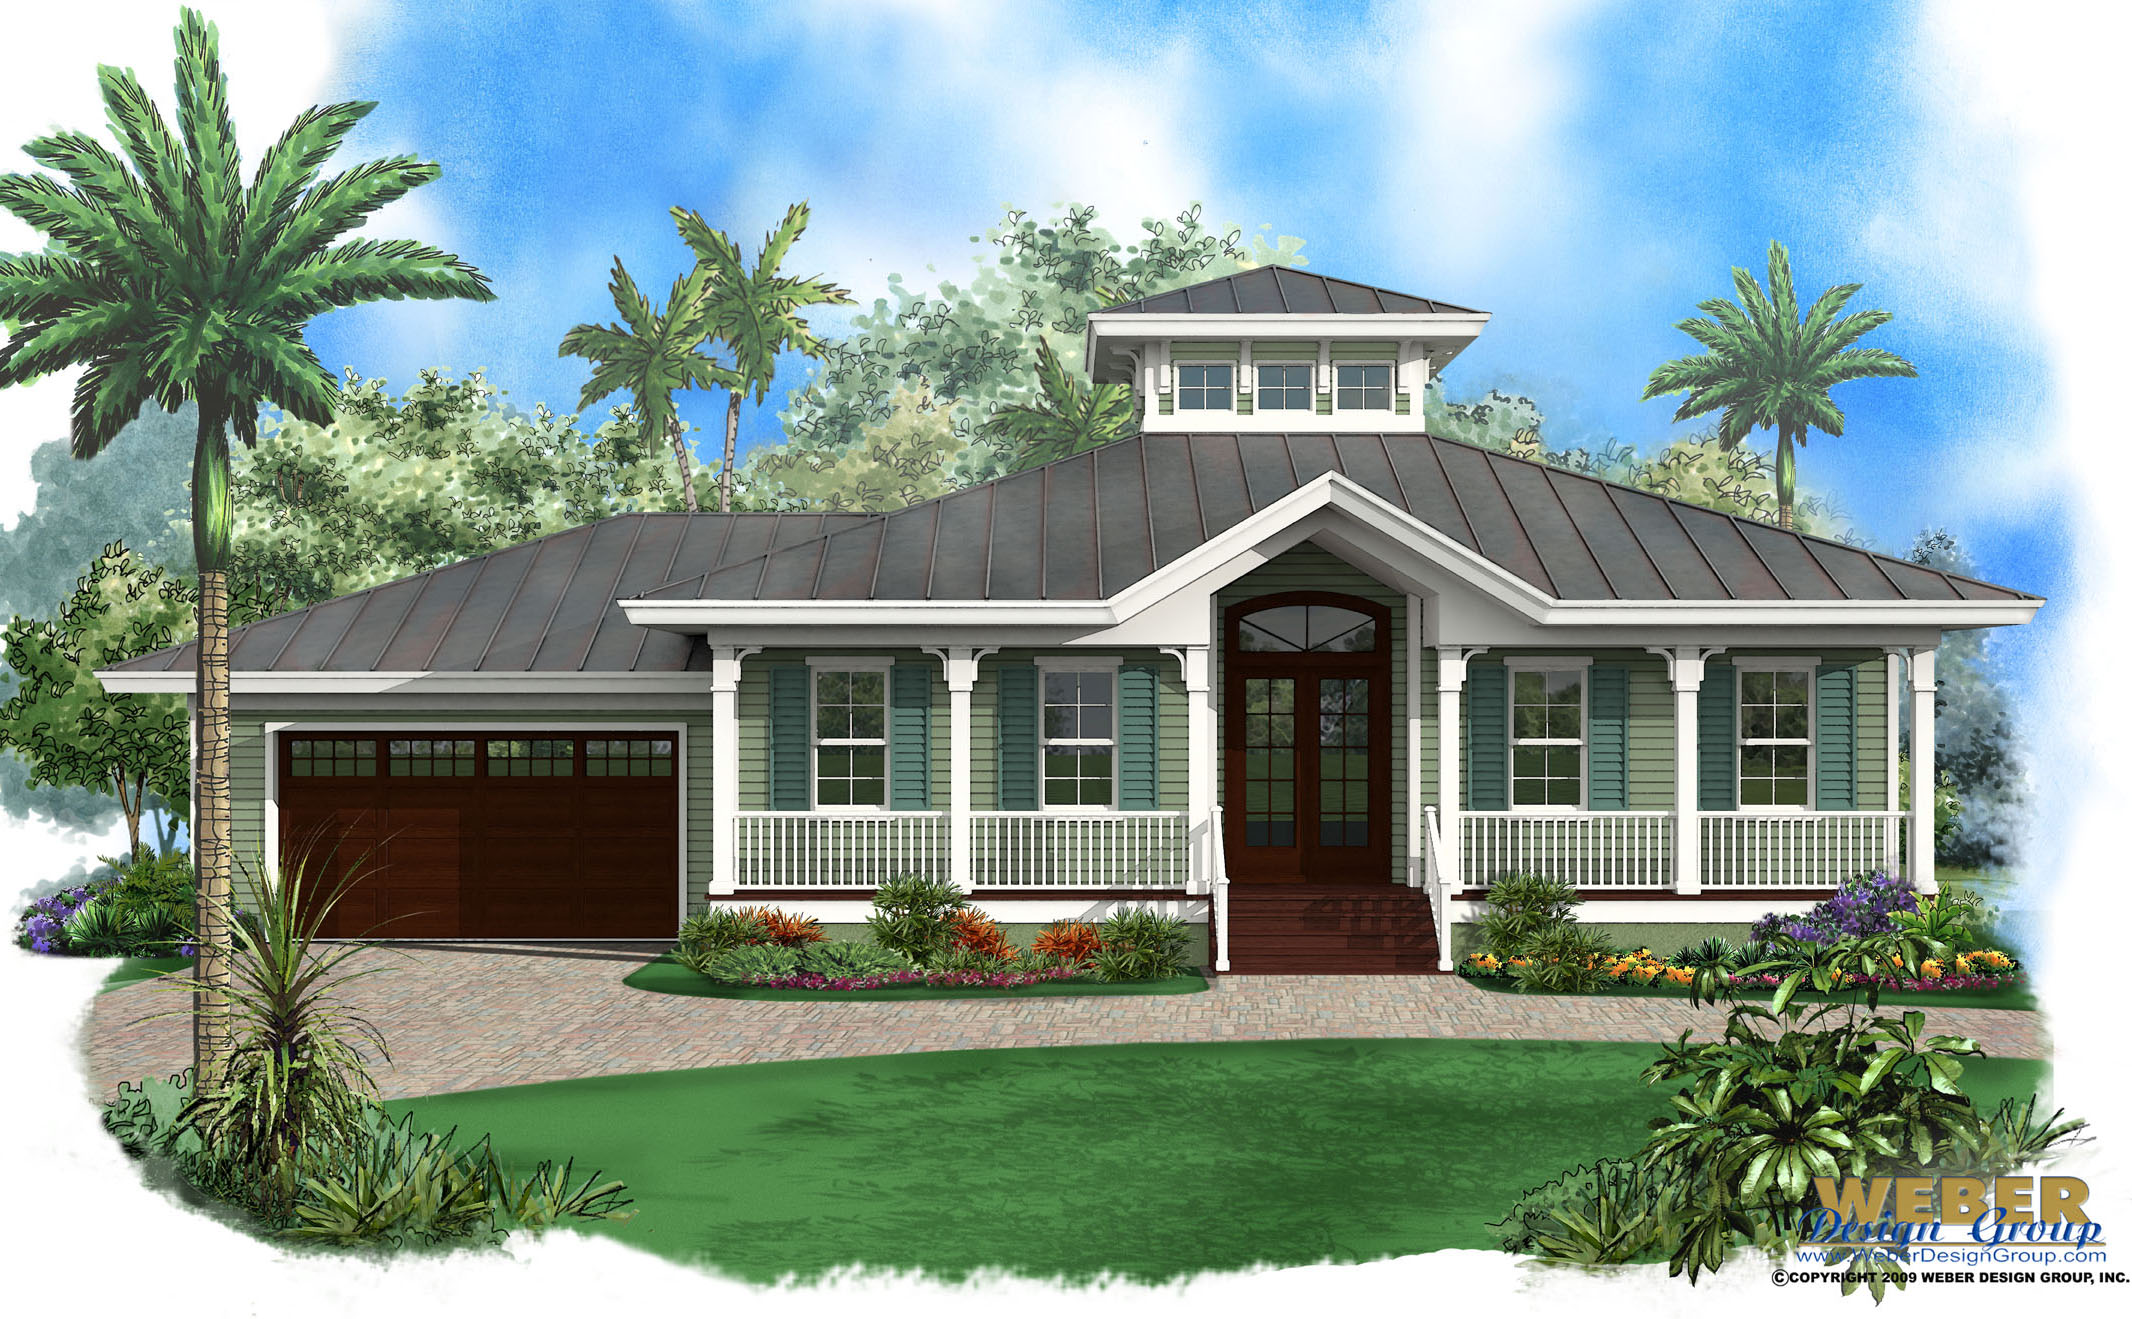 Key west house plans key west island style home floor plans for How to build a house in california